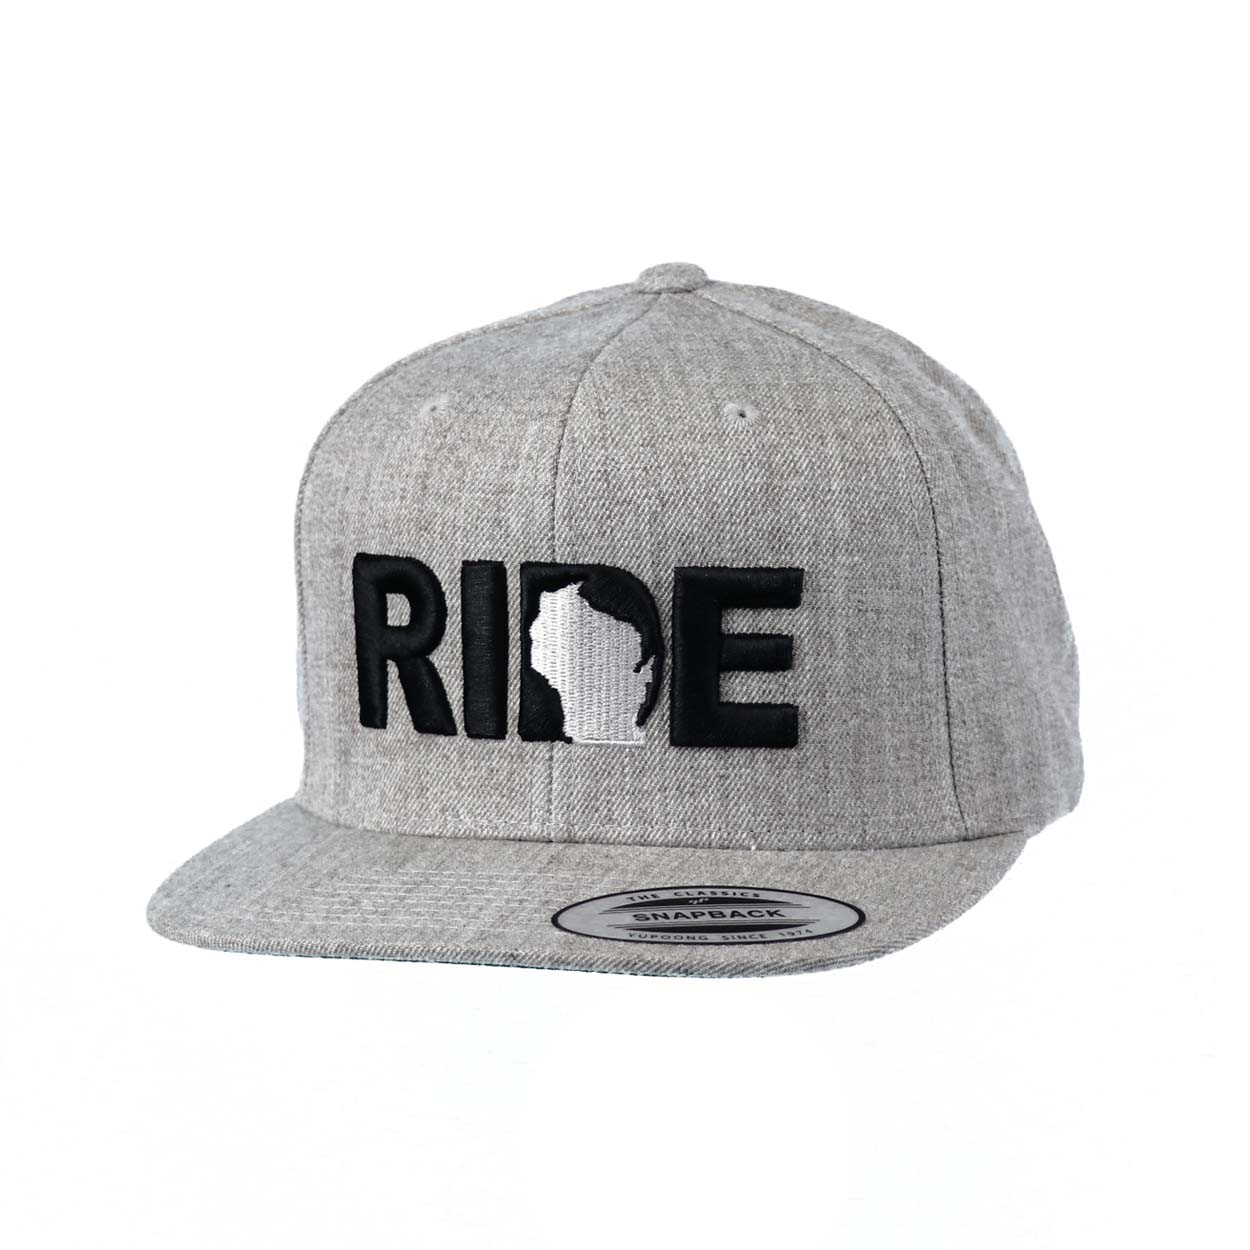 Ride Wisconsin Classic Embroidered  Snapback Flat Brim Hat Gray/Black